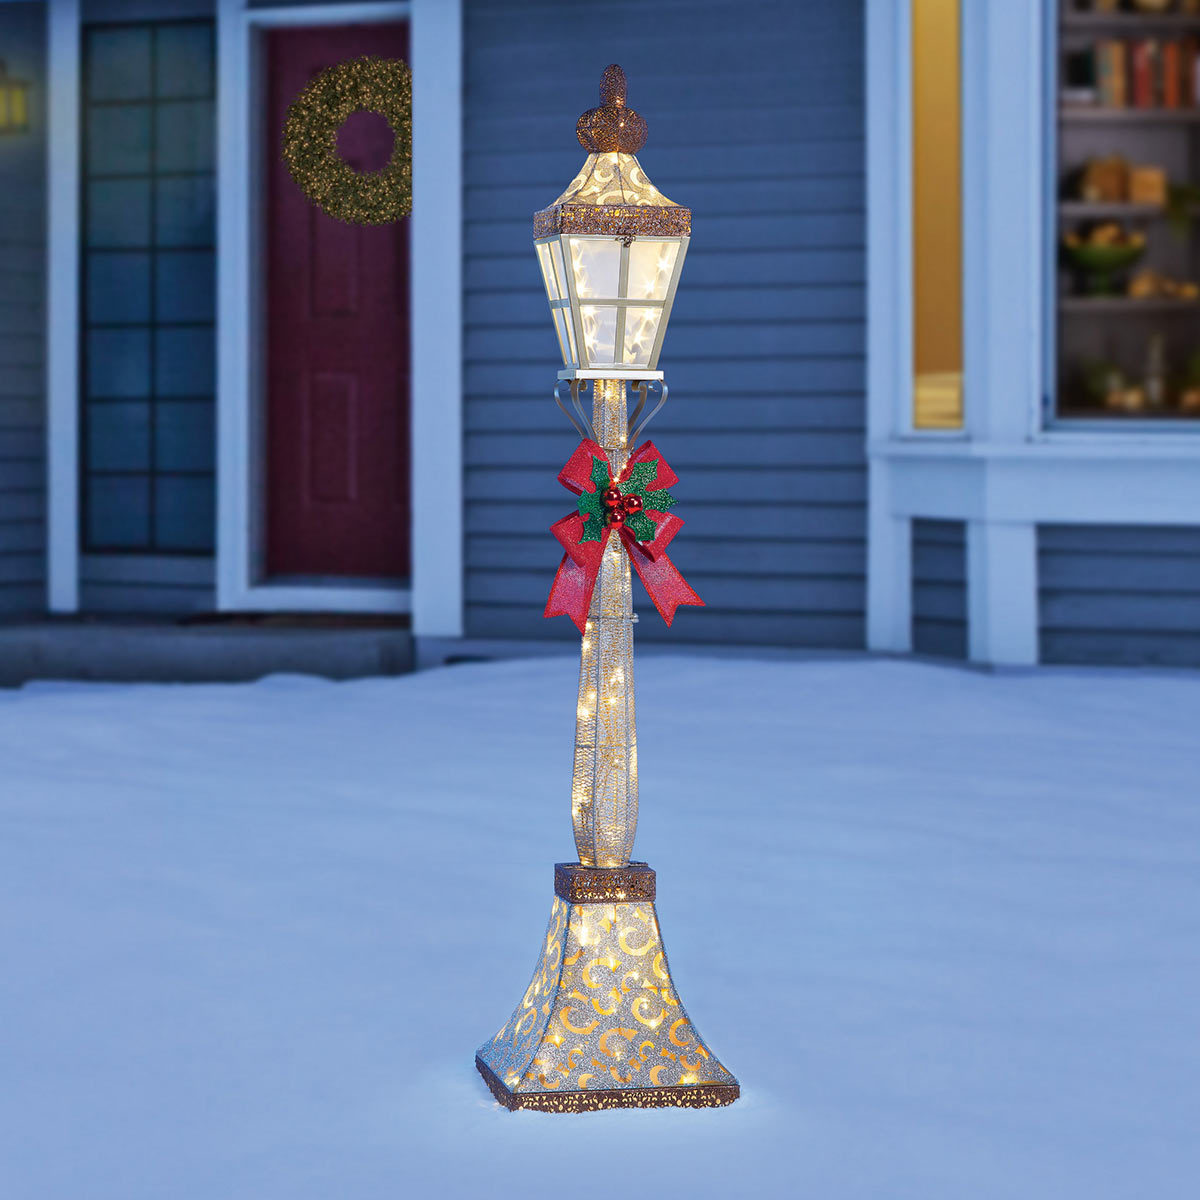 6ft 1 8m Christmas Street Lamp Bow With 120 Led Lights Costco Uk